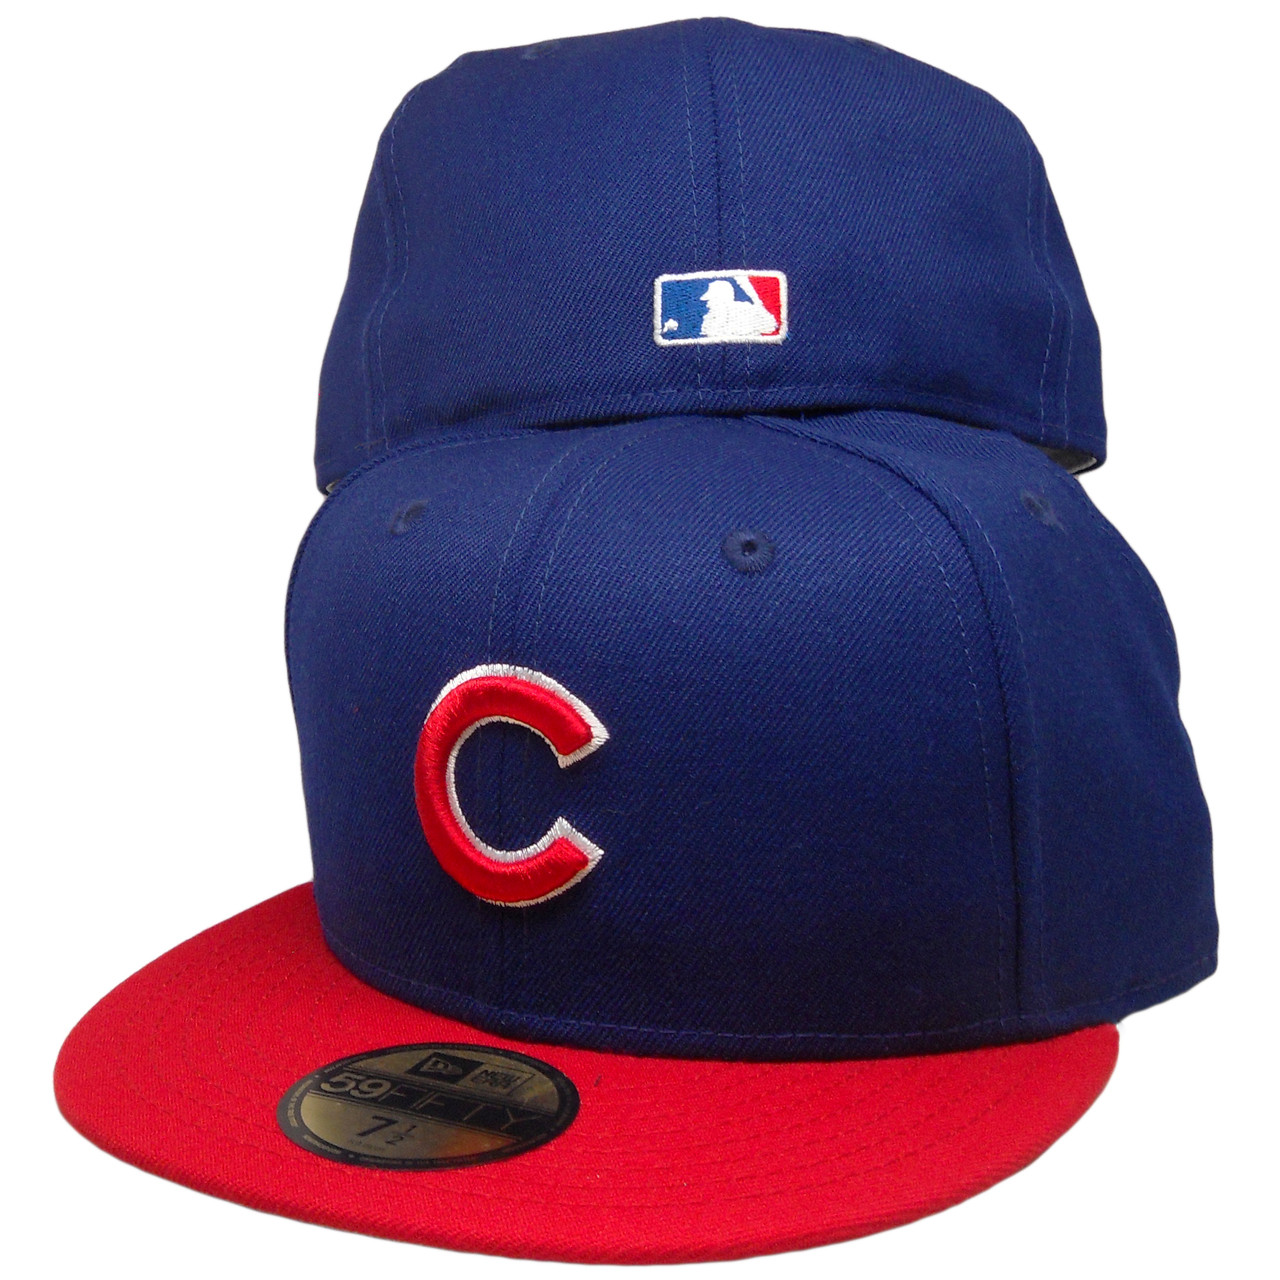 3939d08b Chicago Cubs New Era Custom 59Fifty Fitted Hat - Dark Royal, Red, White -  ECapsUnlimited.com